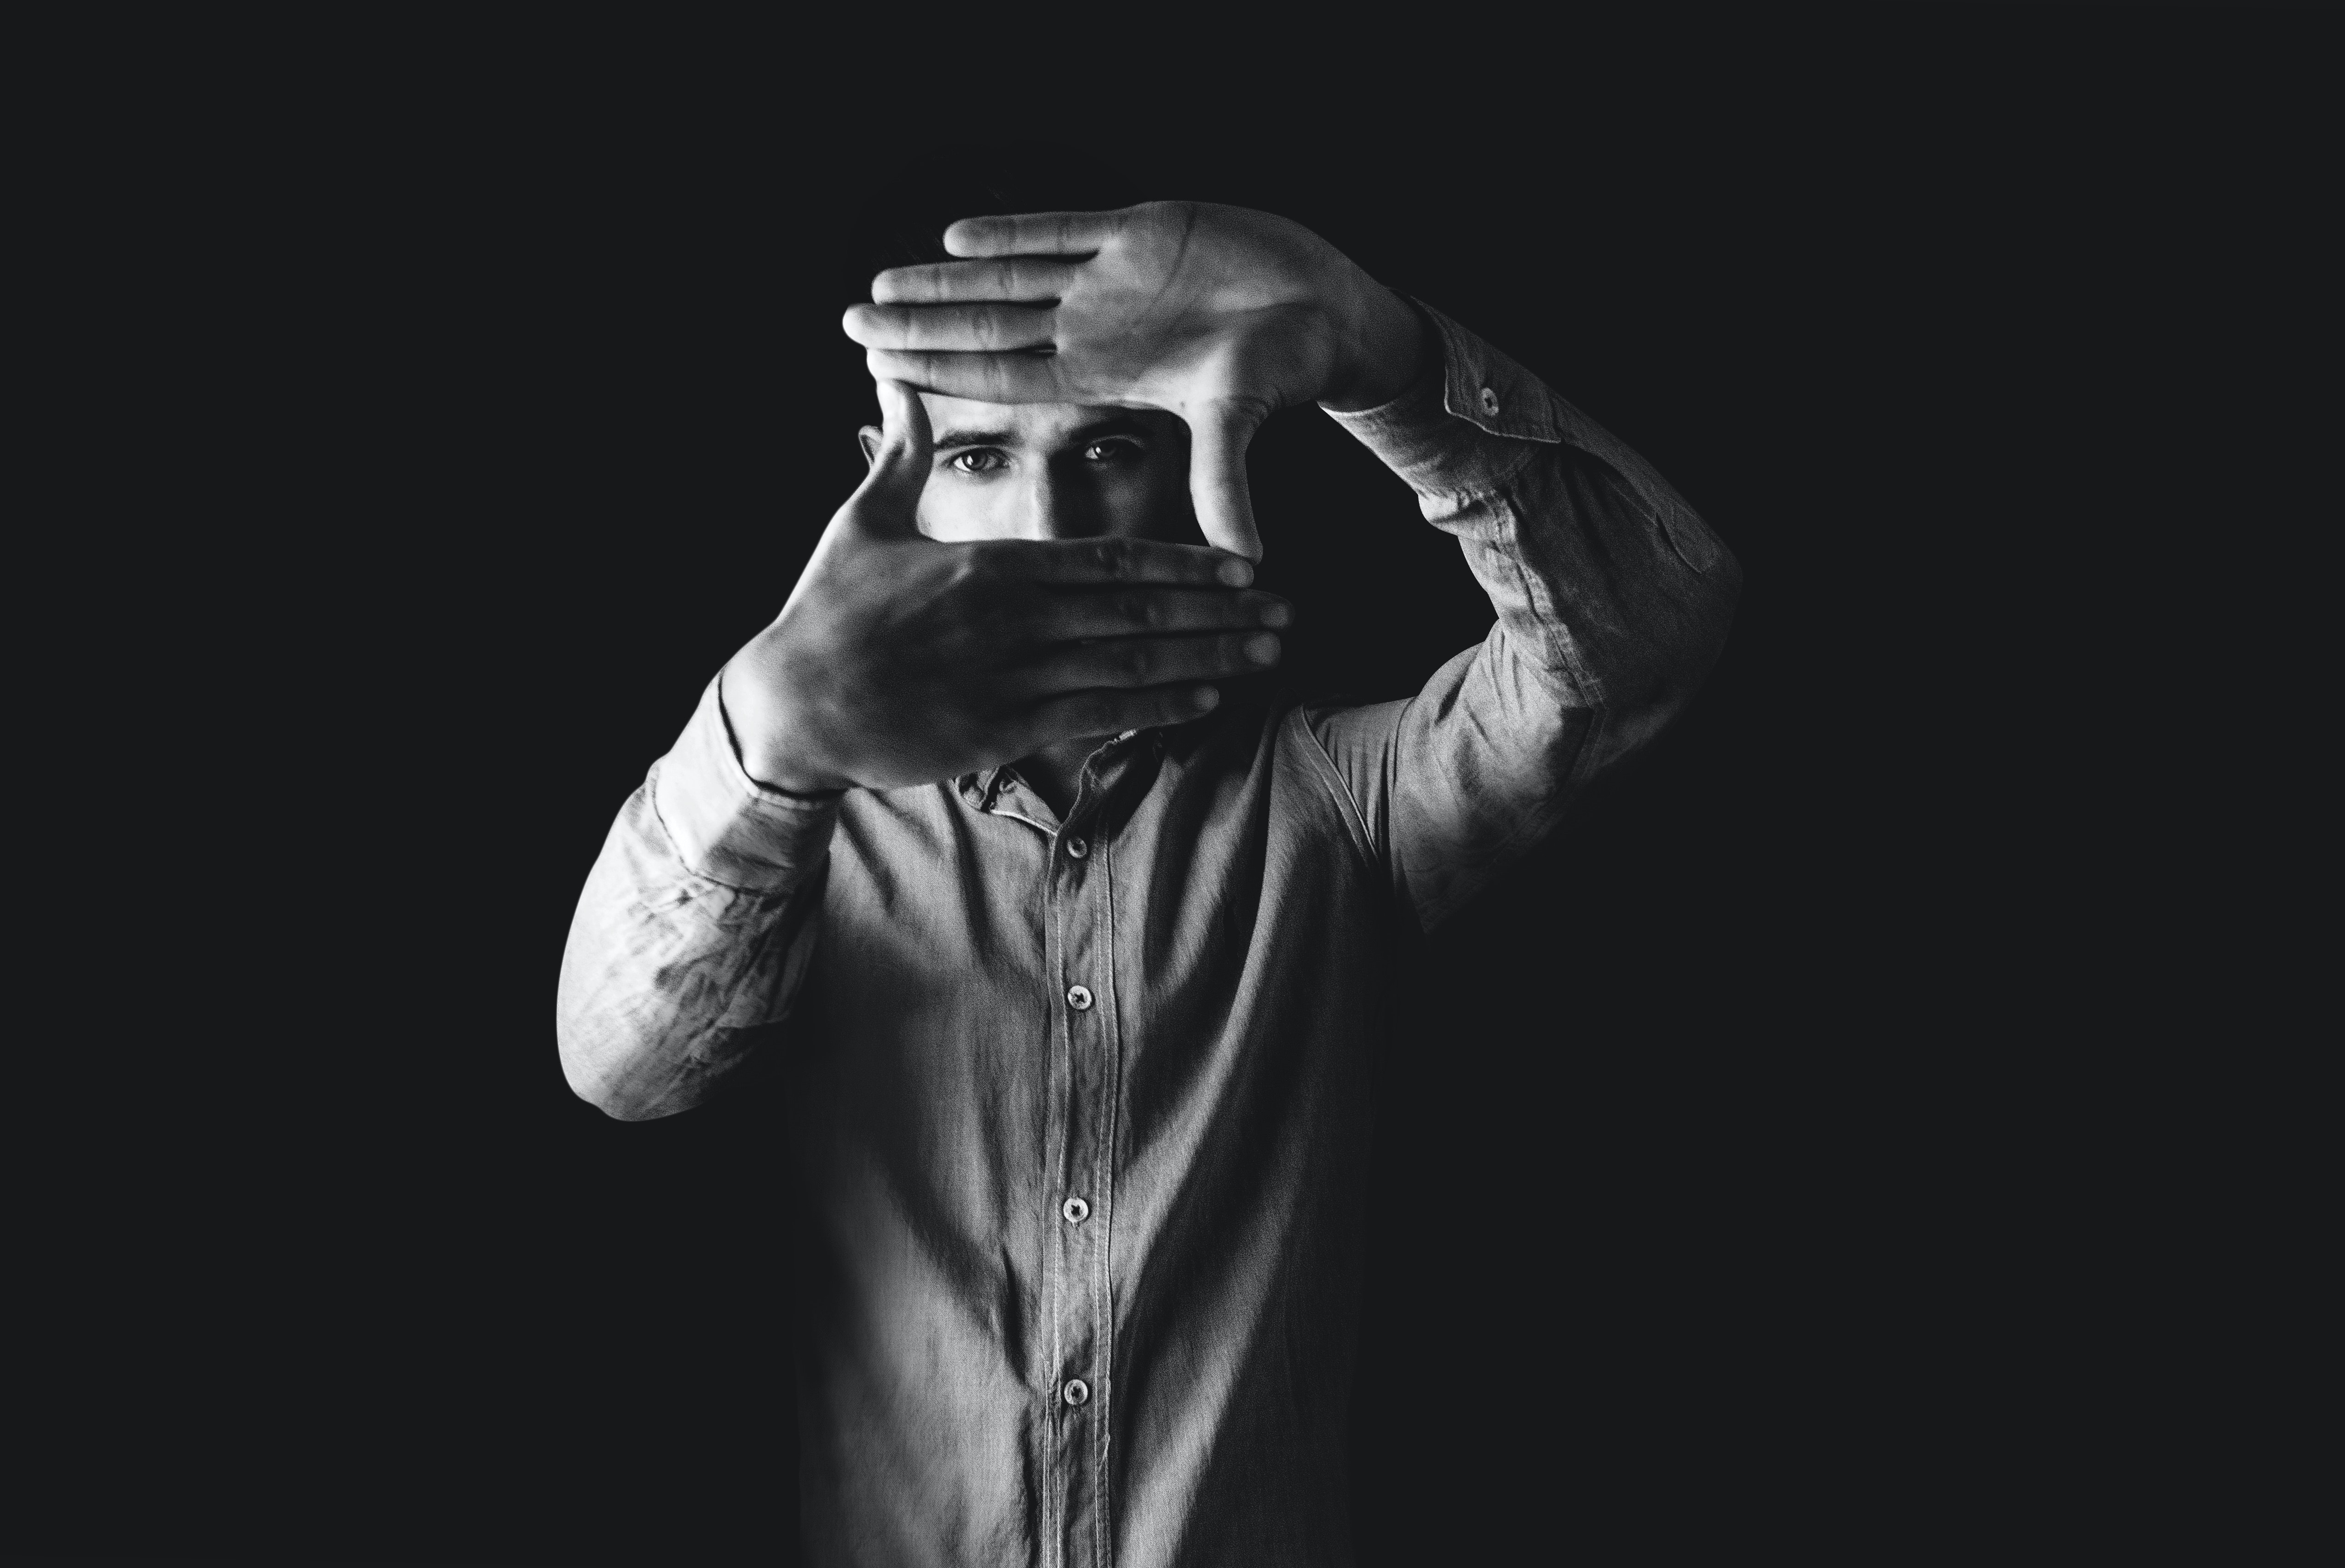 Black and white photo of man looking into the camera through a square he made with his hands